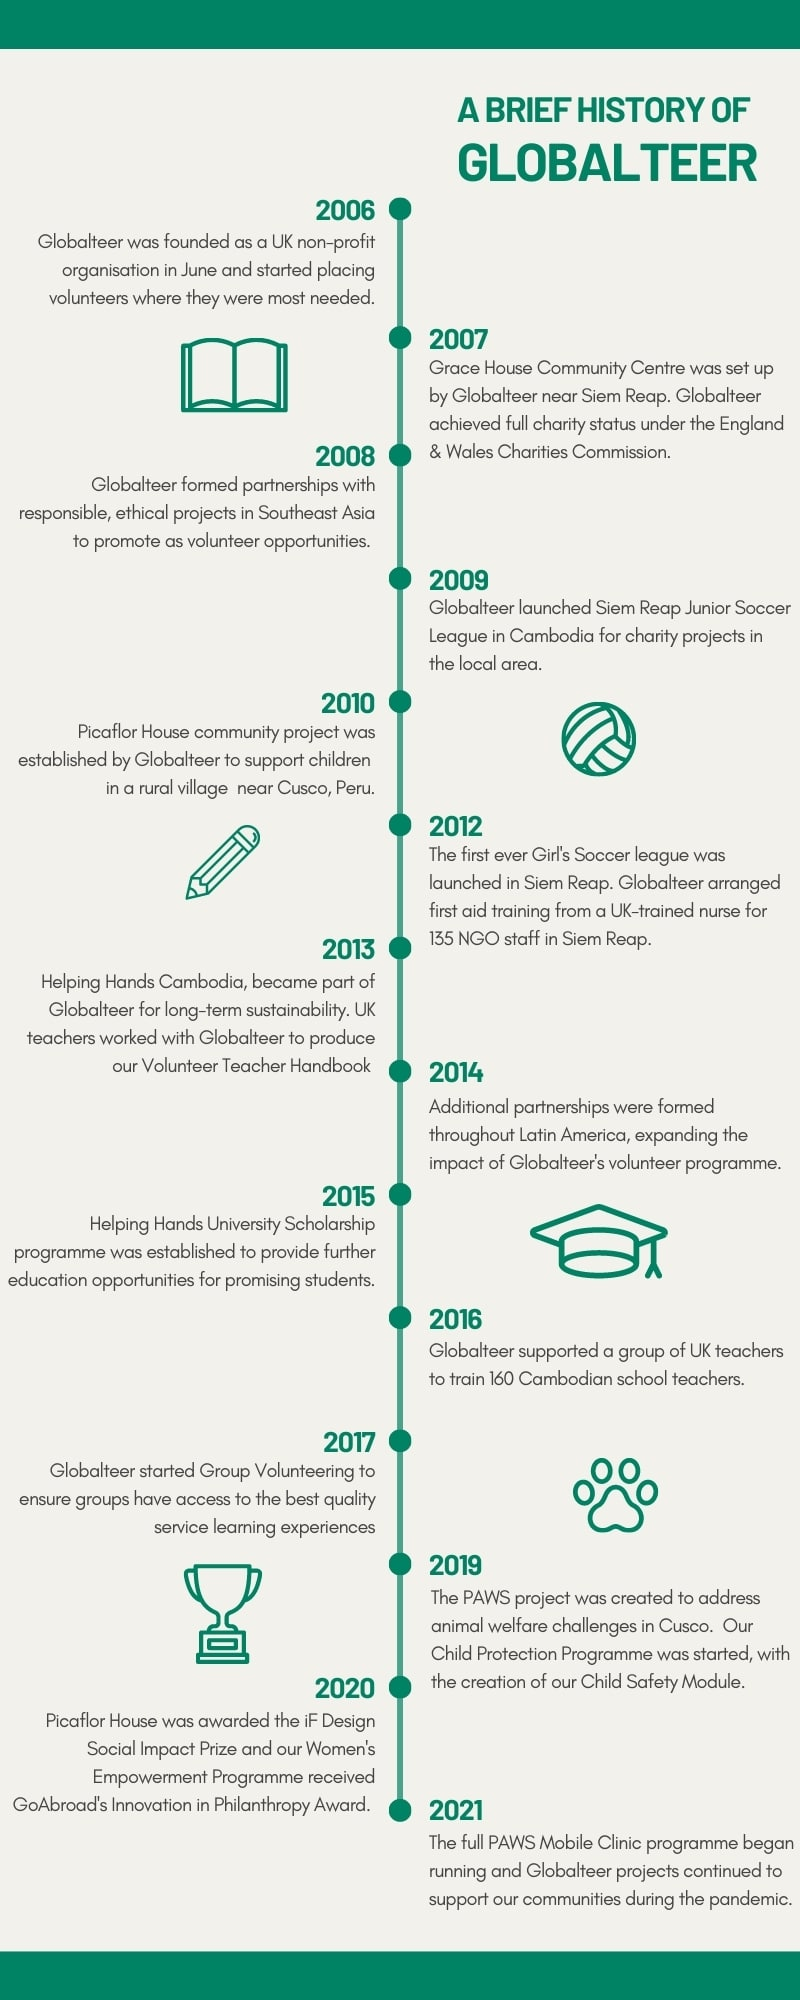 a brief history of Globalteer in infographic form